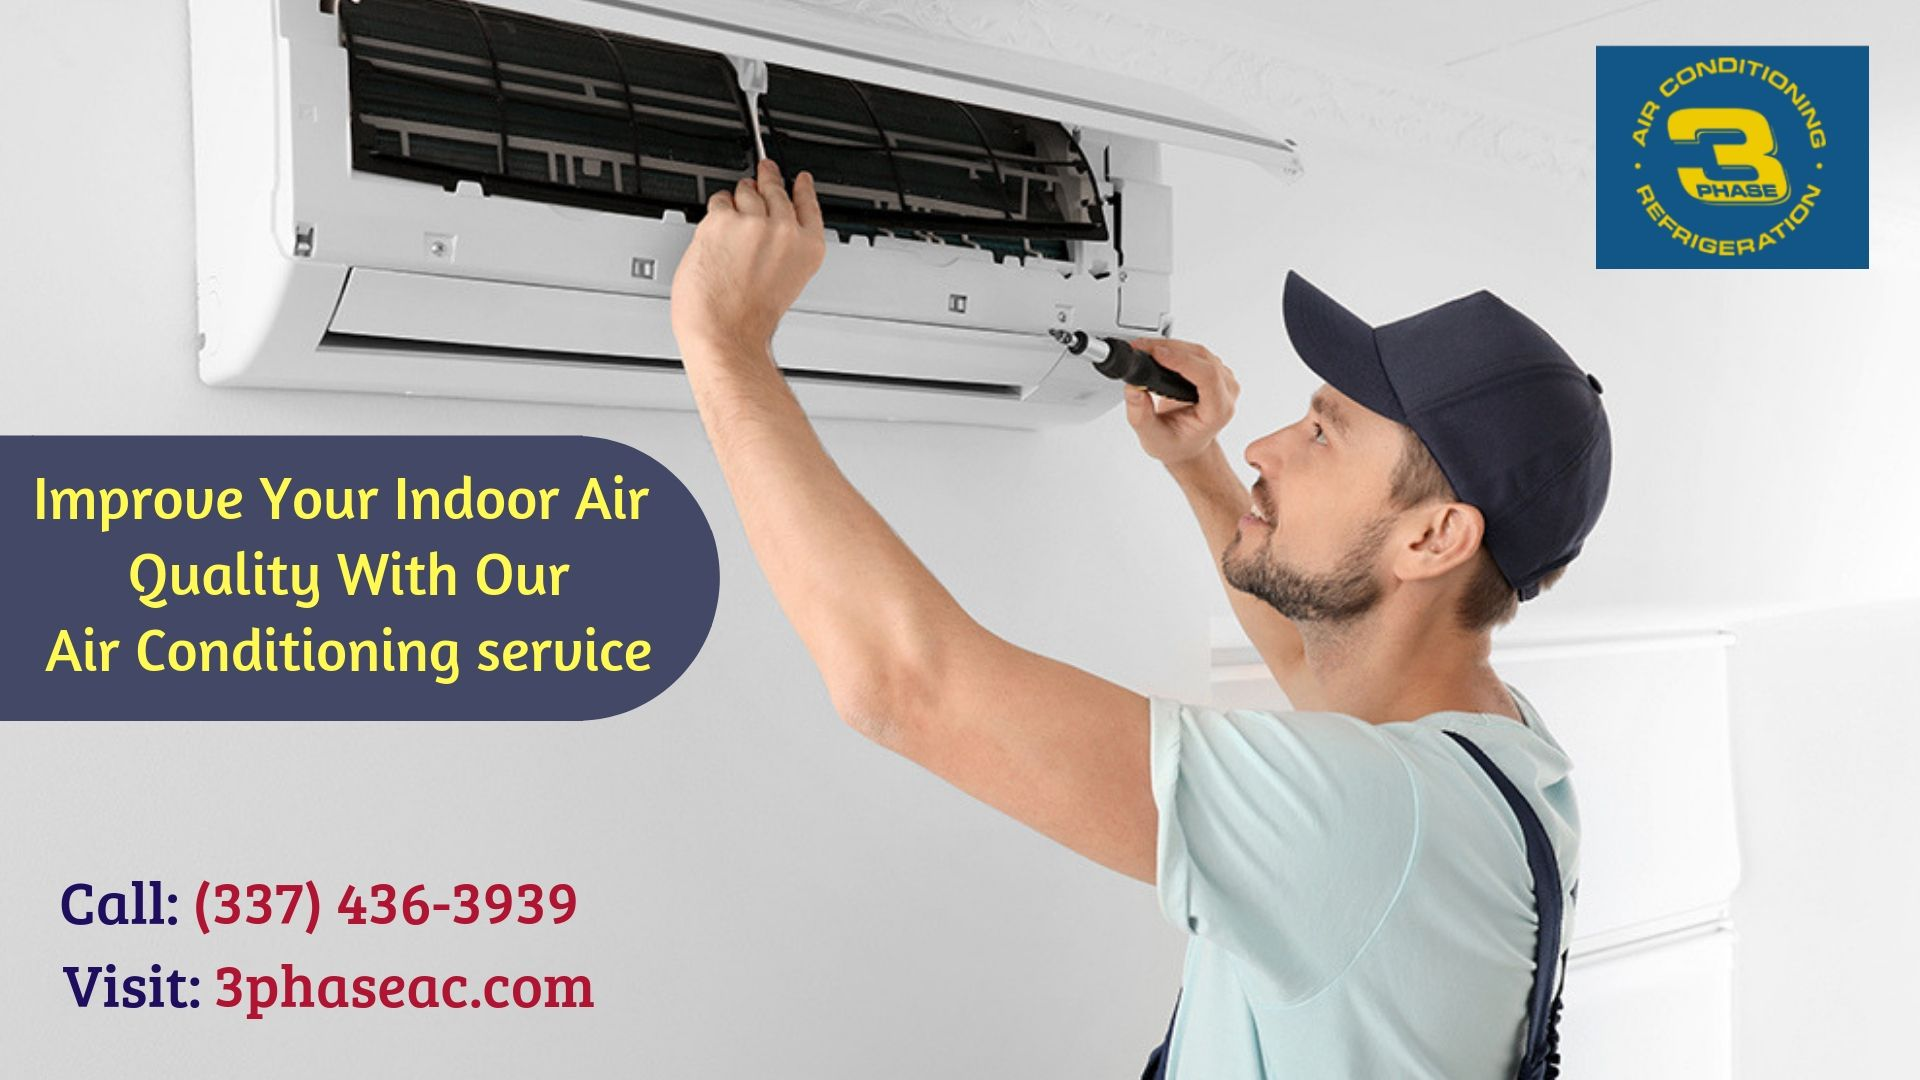 Having thought to get quality air conditioning service? At